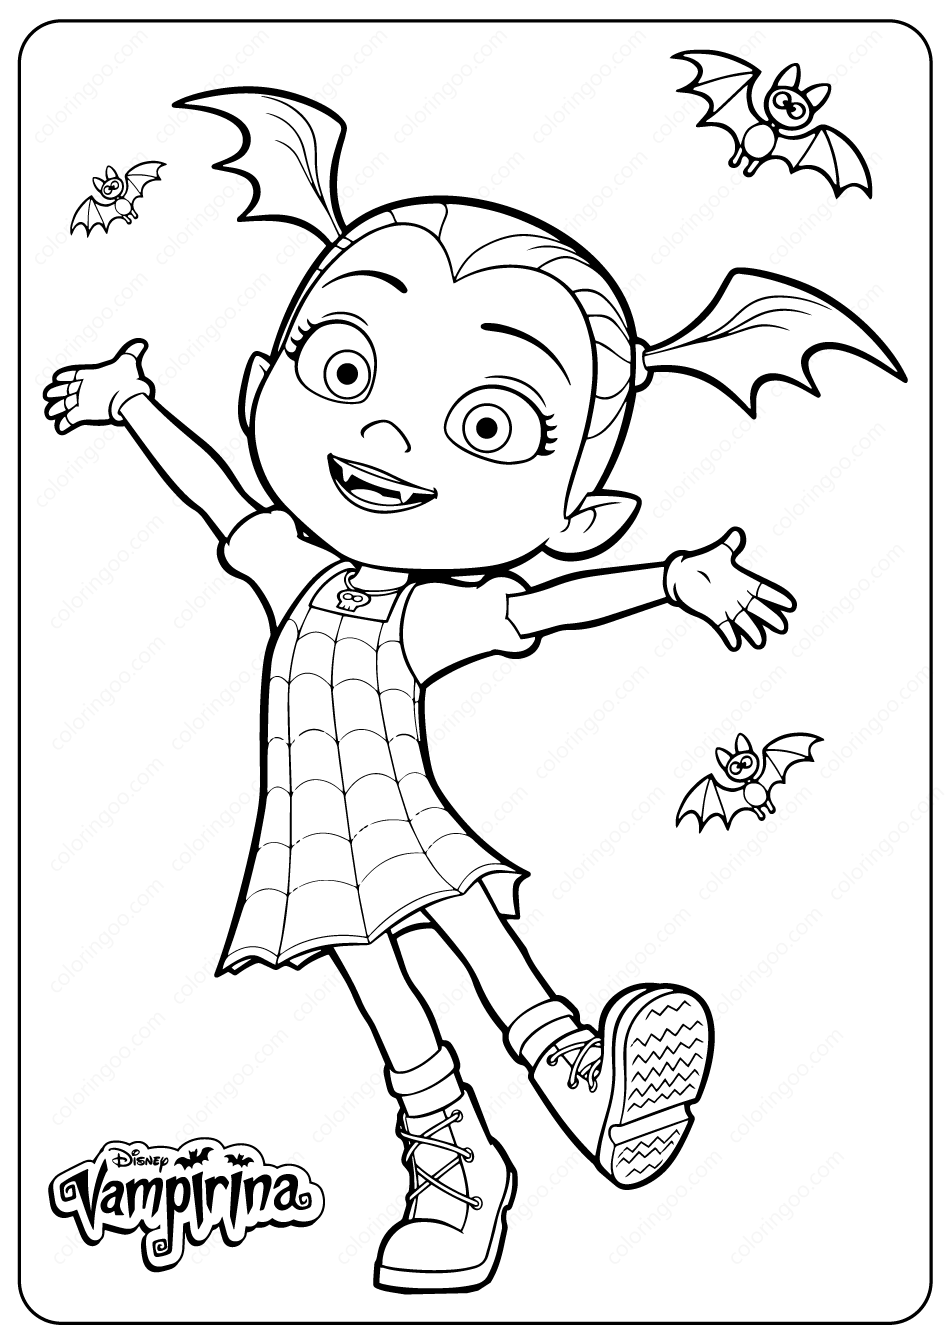 Disney Junior Vampirina Coloring Pages Disney Coloring Pages Printables Cartoon Coloring Pages Halloween Coloring Pages